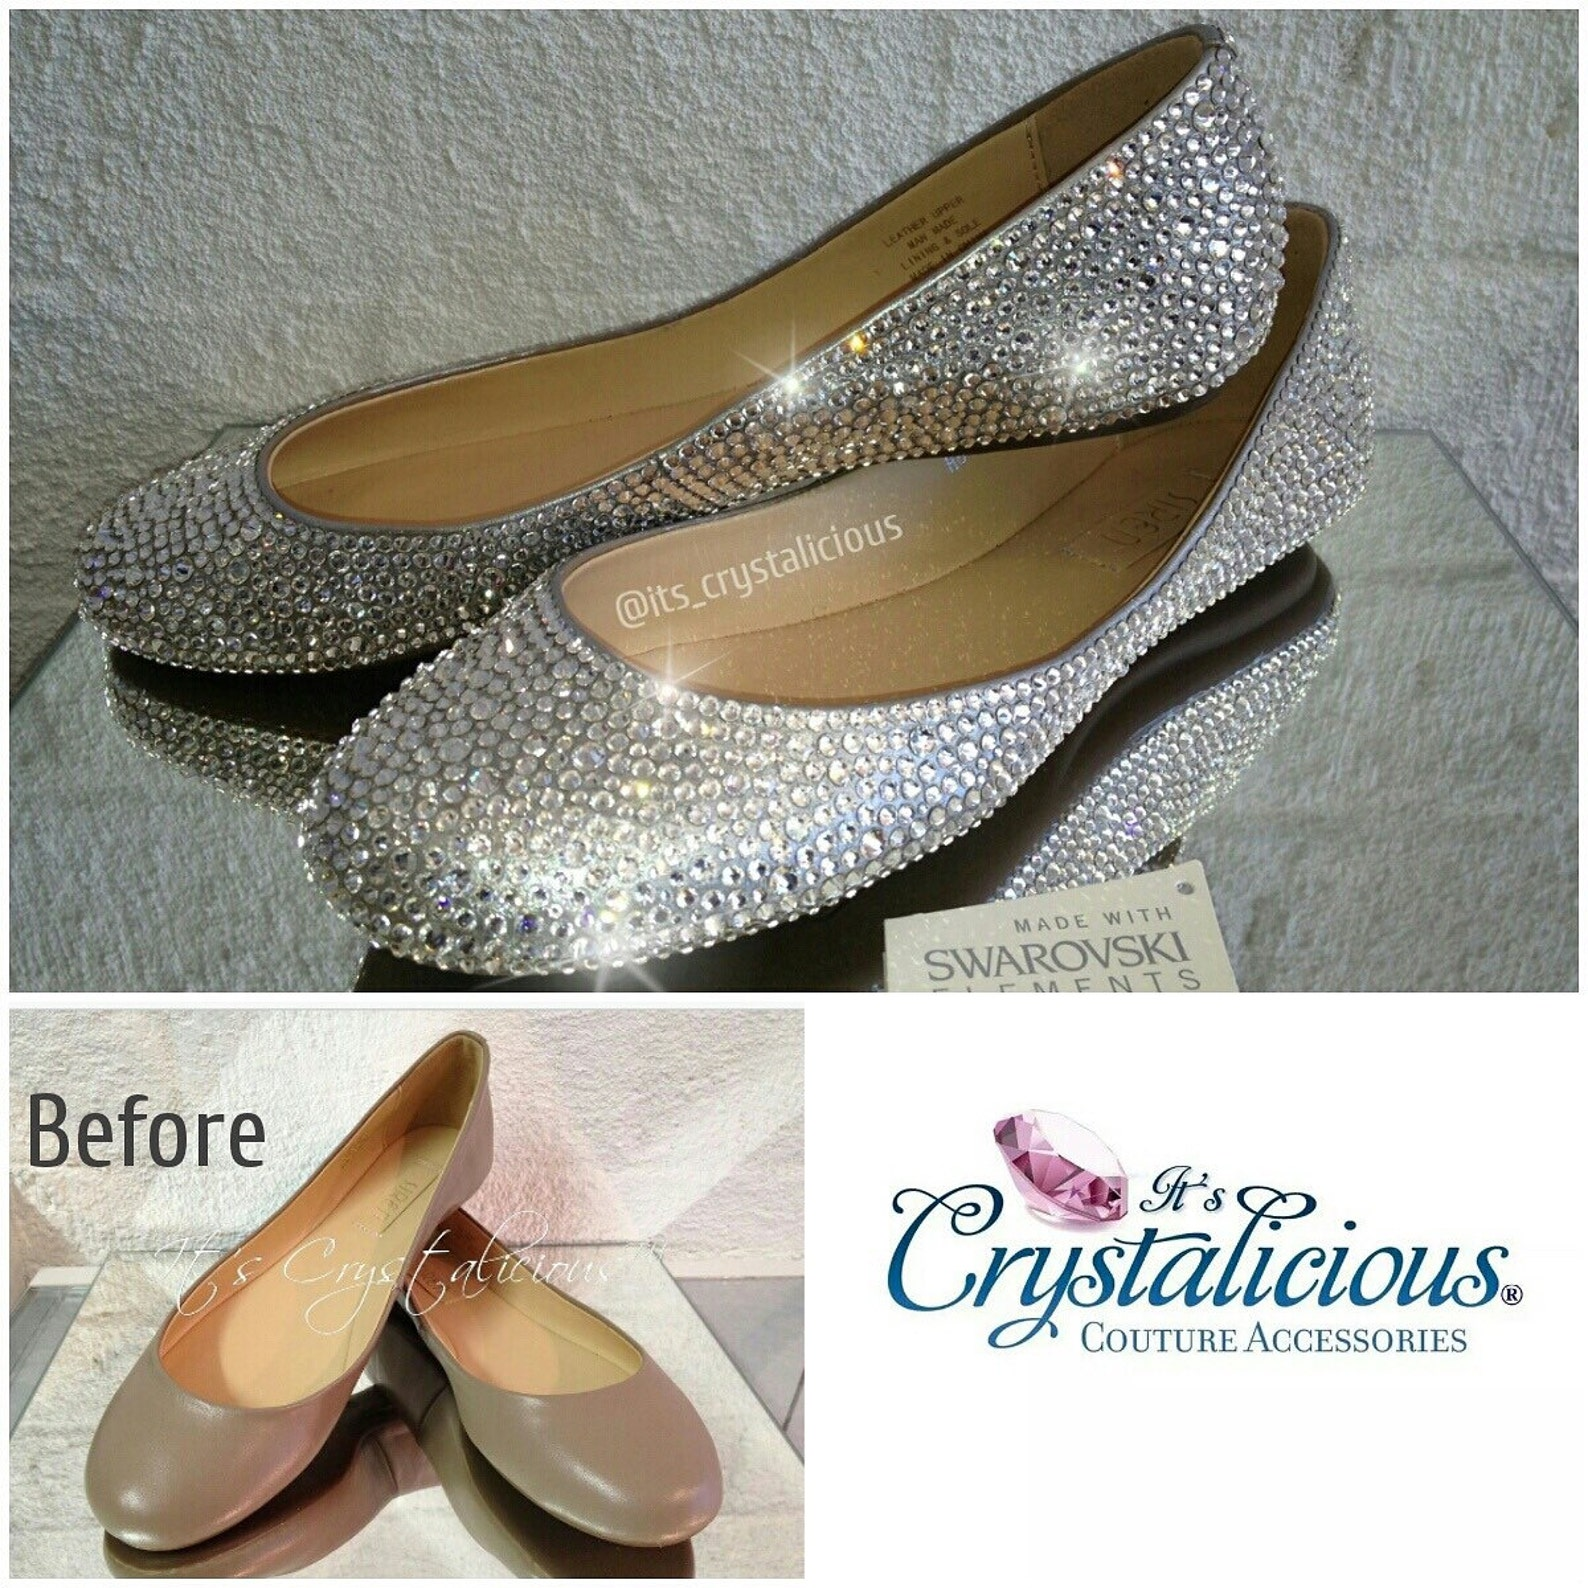 send your ballet flats to be embellished with genuine crystals from swarovski®.